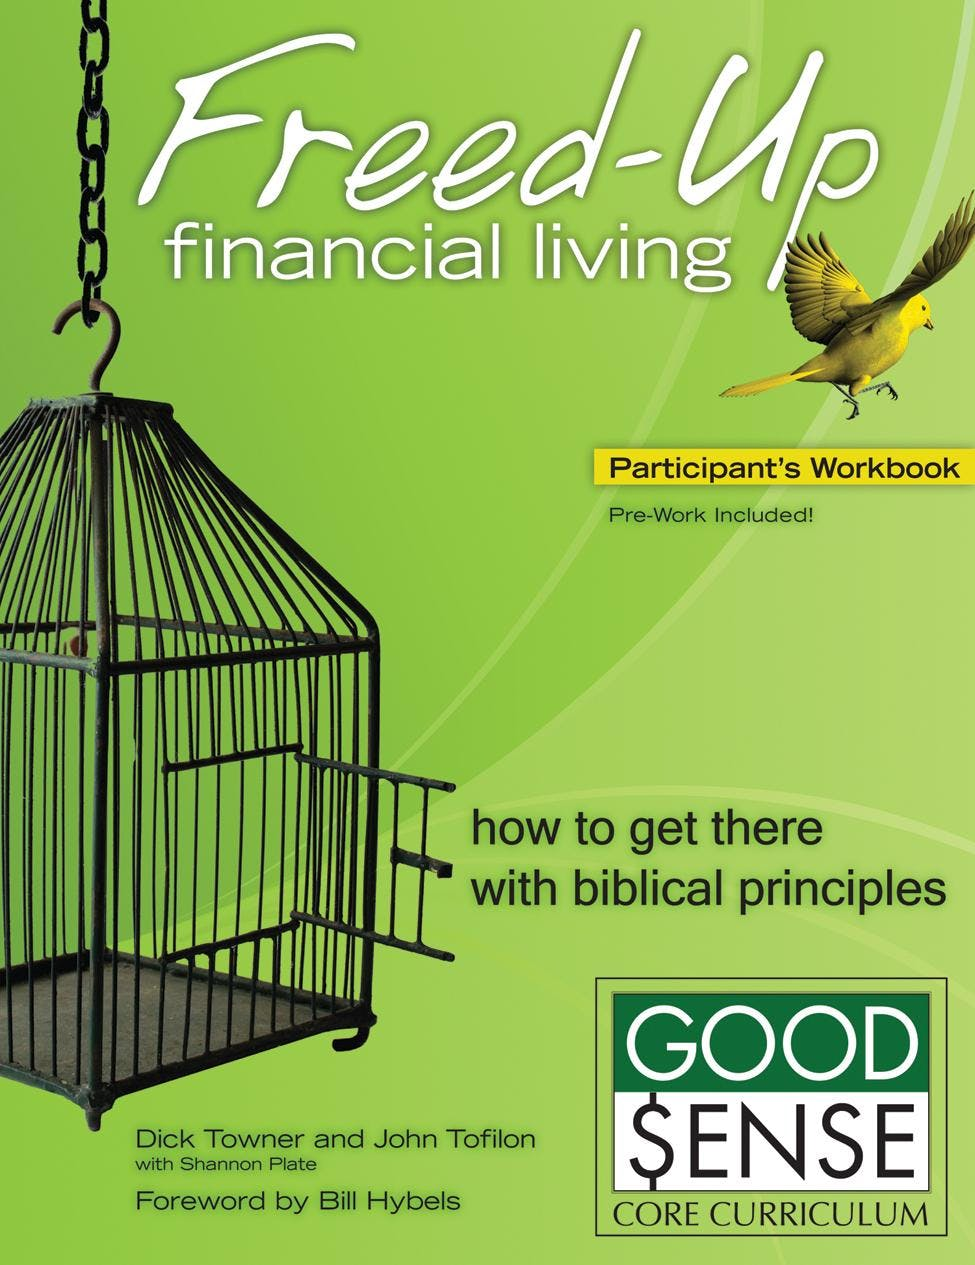 Freed-Up Financial Living Workshop - West Campus